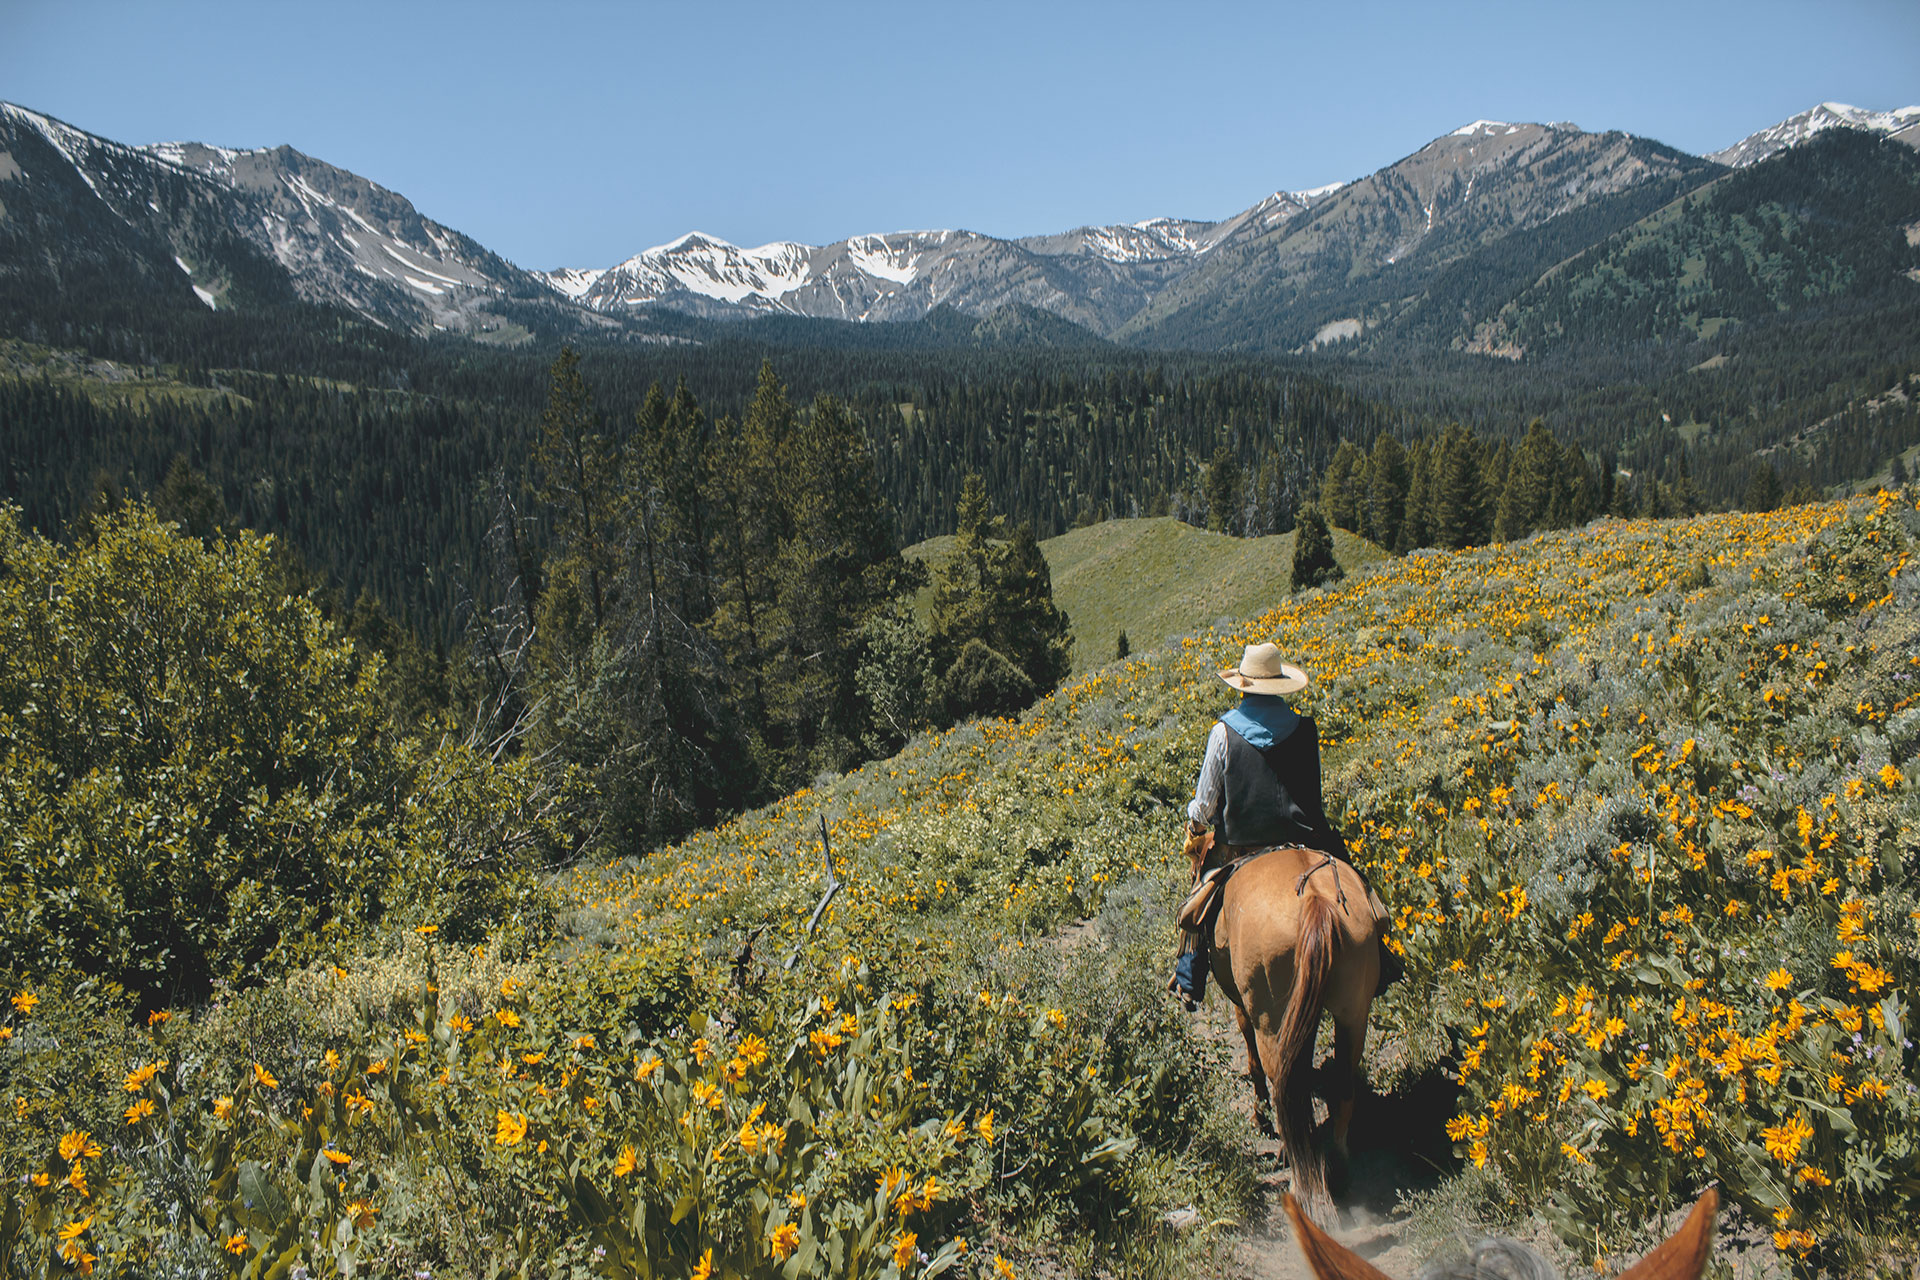 Horseback Riding in Grand Teton National Park; Courtesy of William Shafer/Shutterstock.com